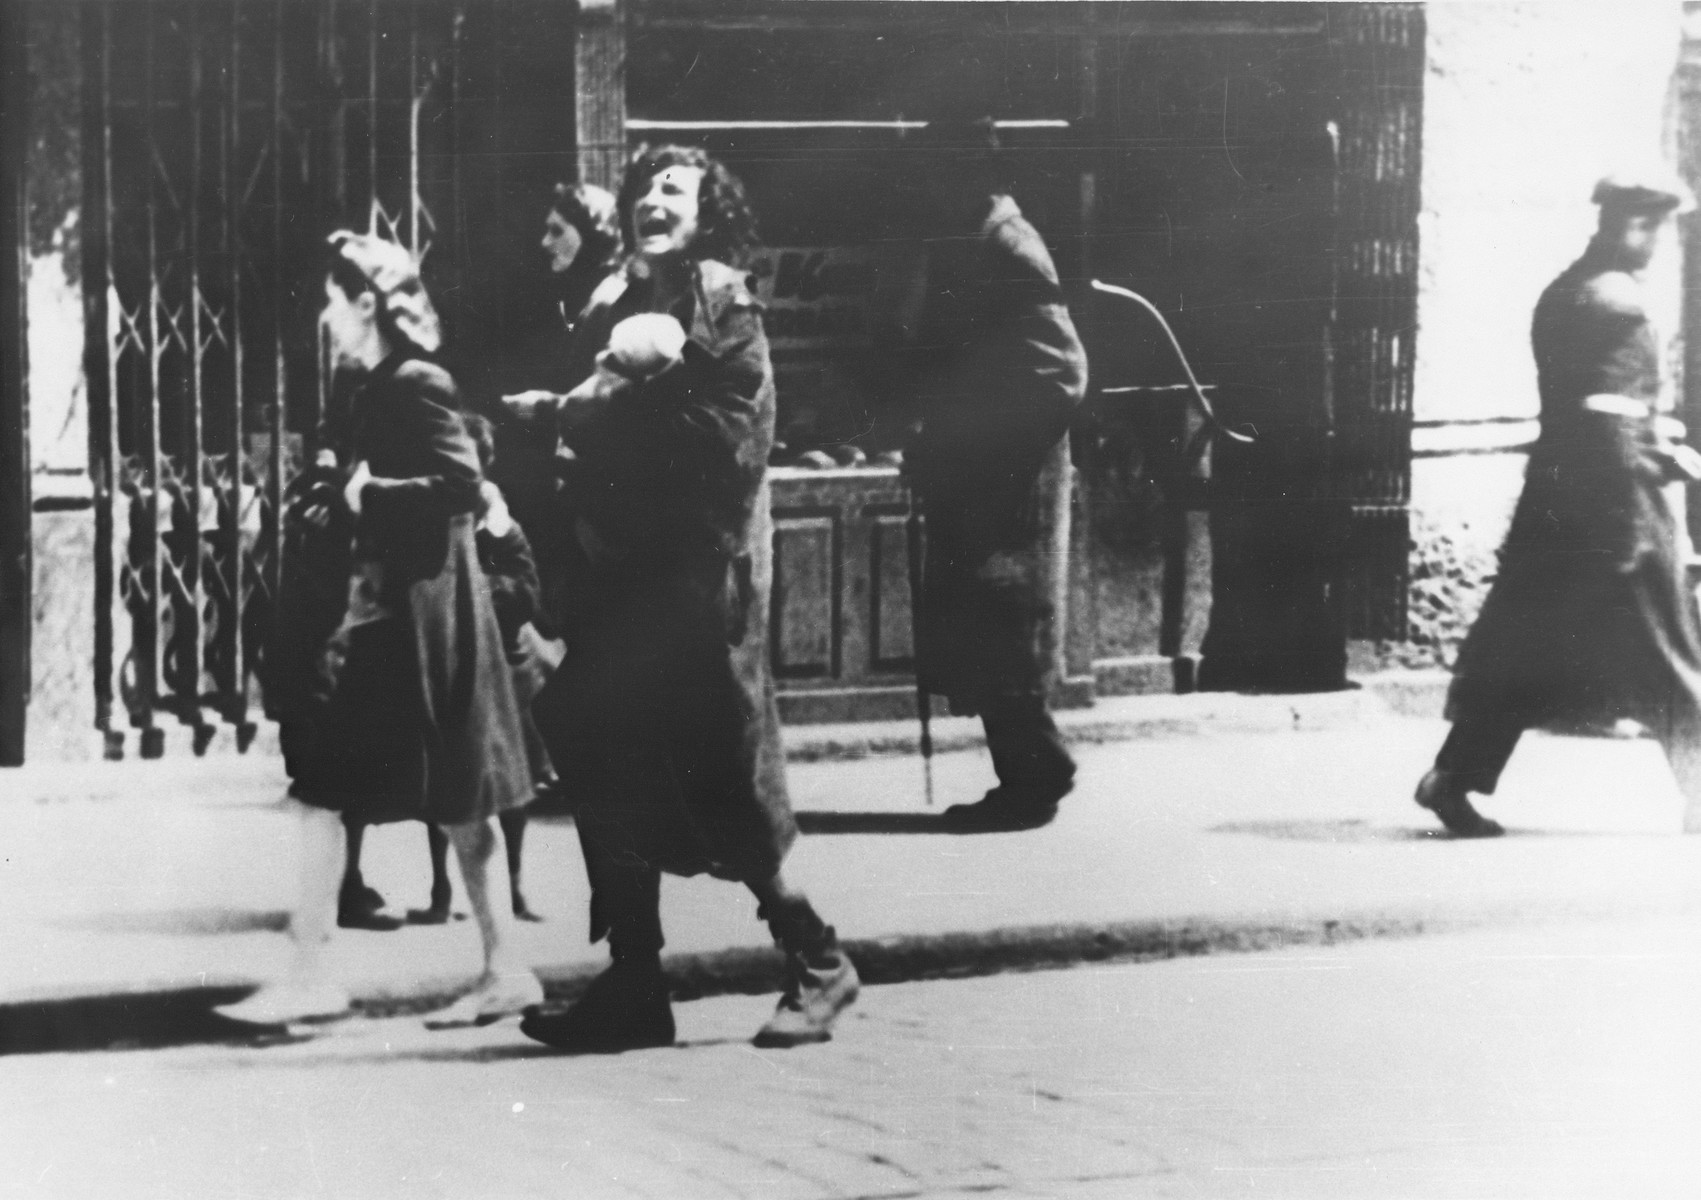 A destitute woman carrying a dead infant cries out as she walks along a street in the Warsaw ghetto.